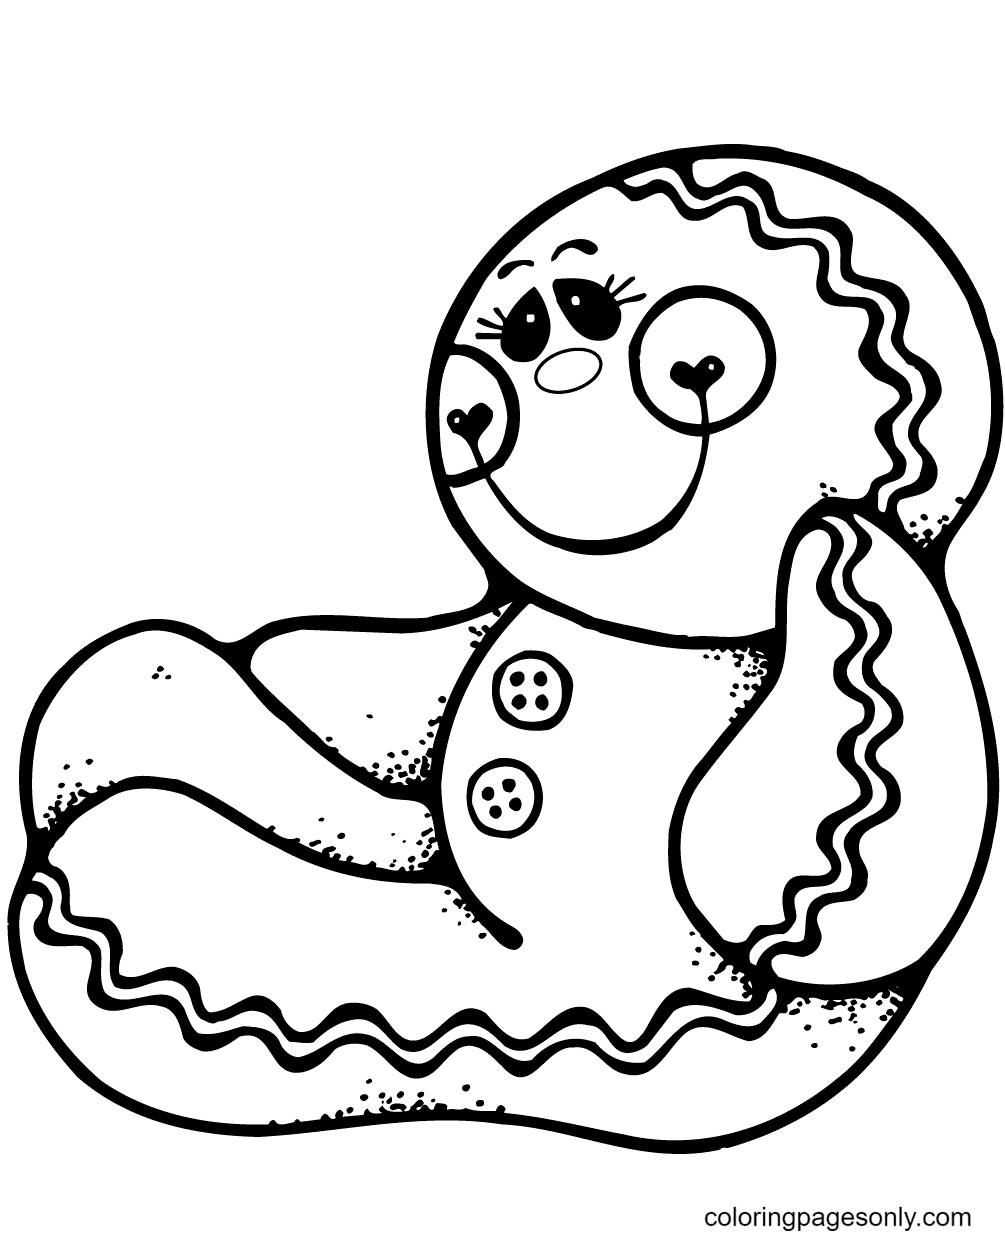 The Gingerbread Man is Sitting Coloring Page